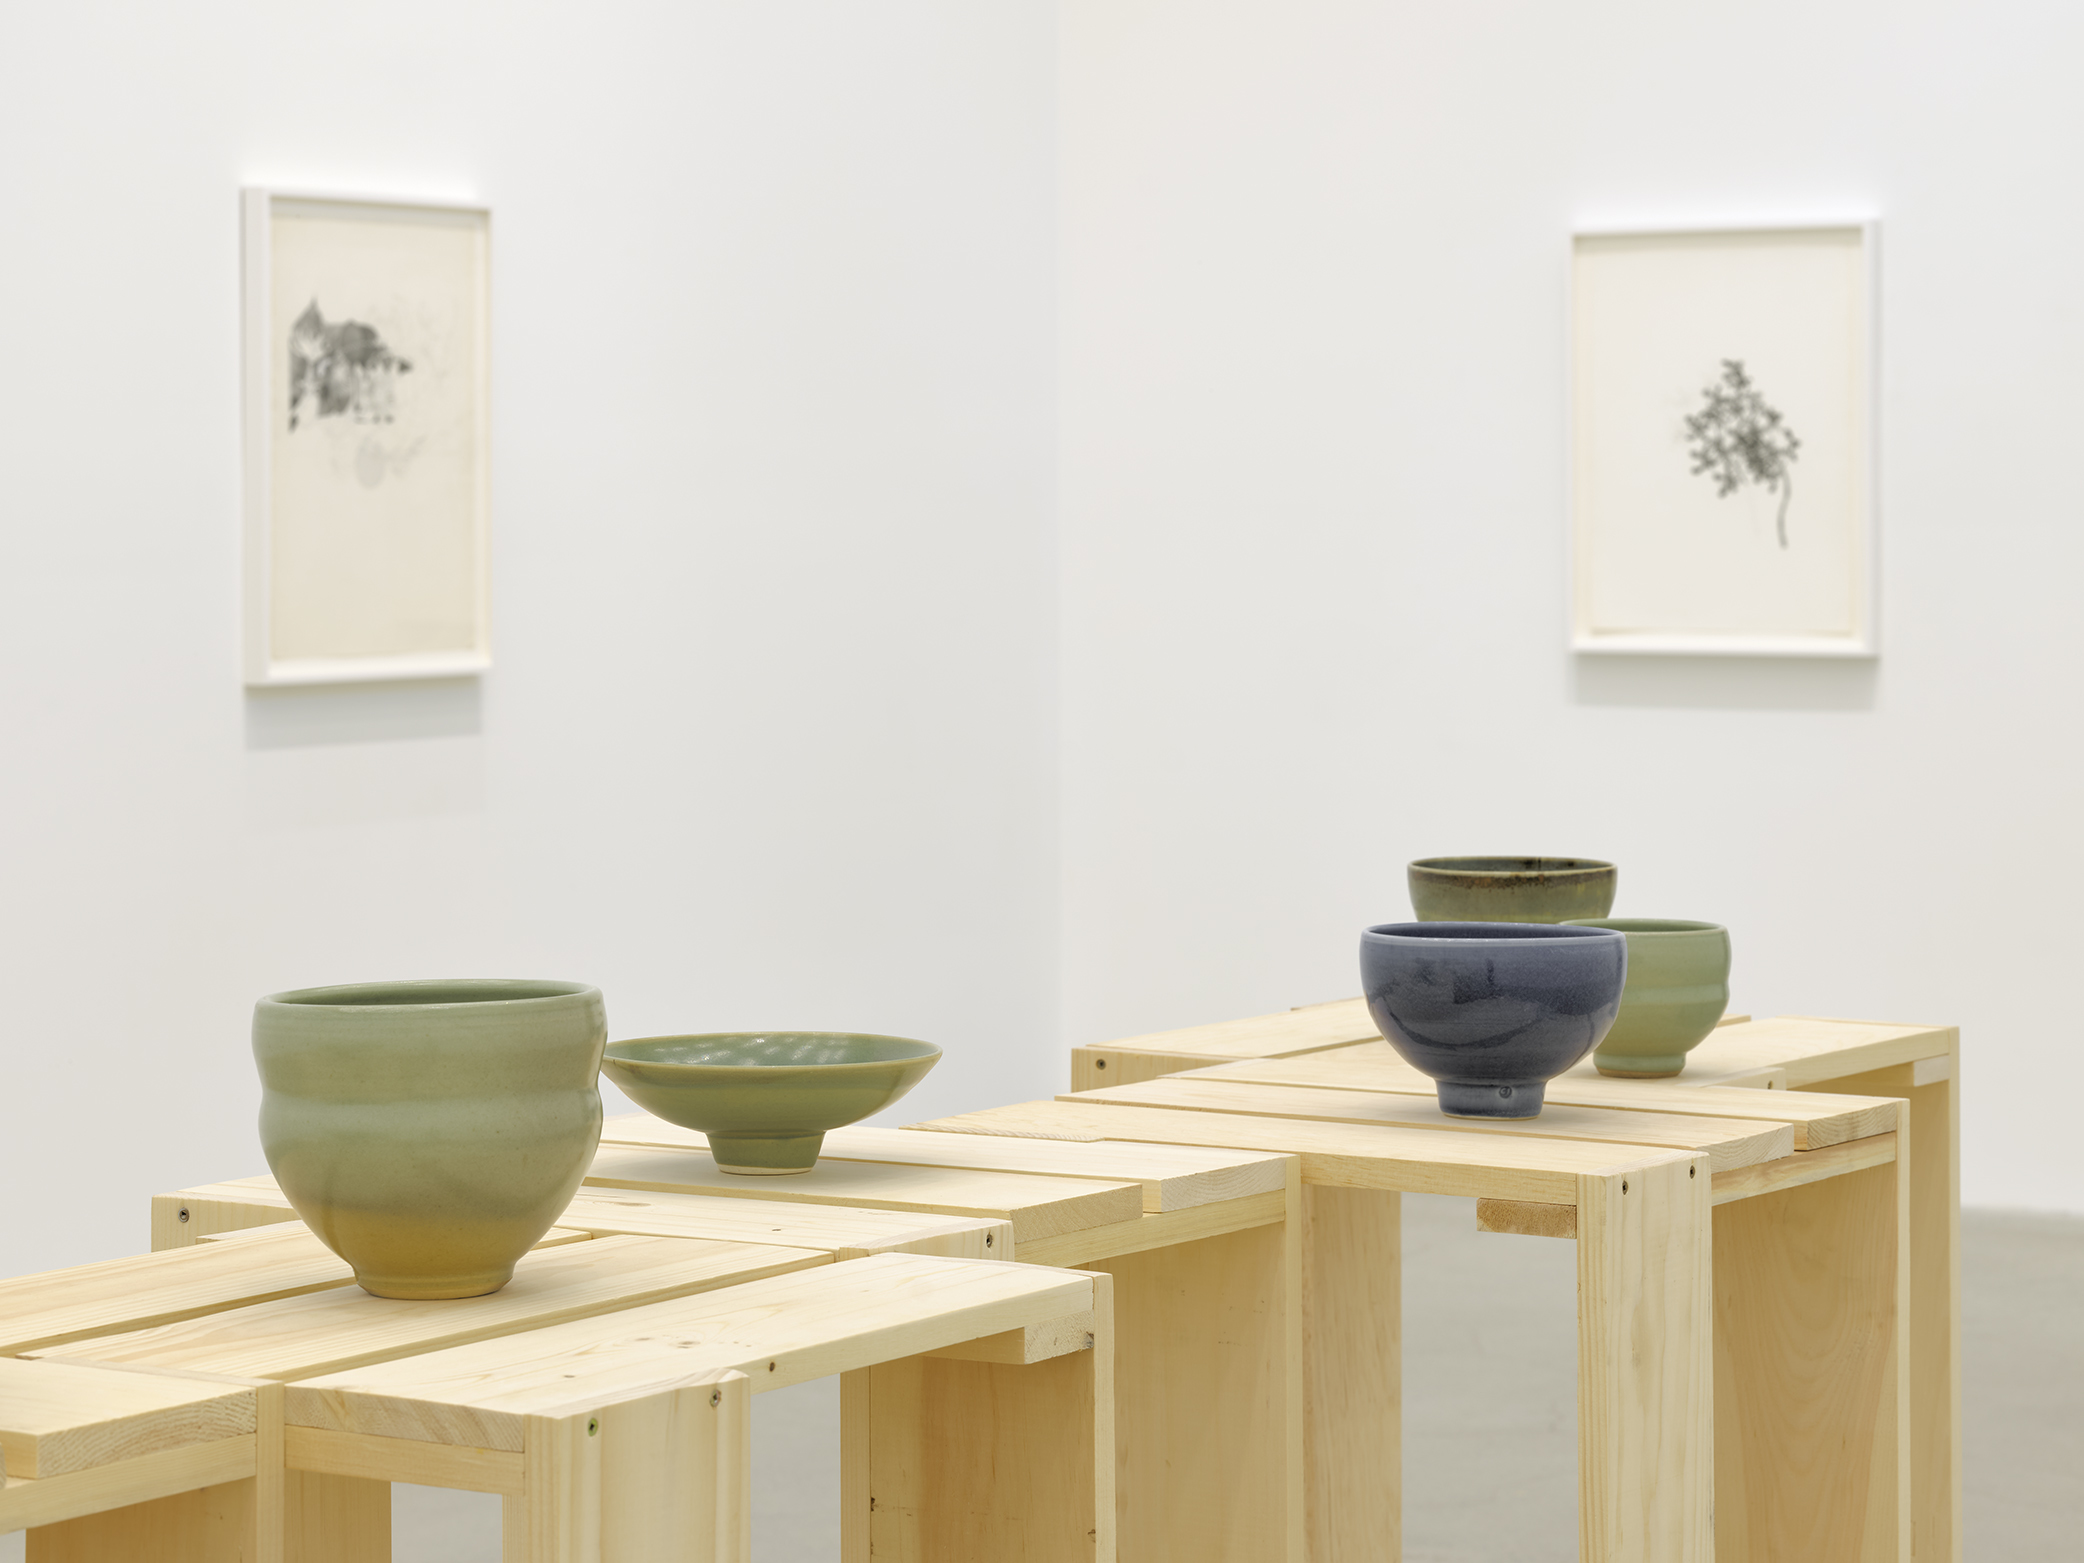 Charmian Johnson, Ceramics collection, 1983–2003, 18 glazed ceramic works, dimensions variable by